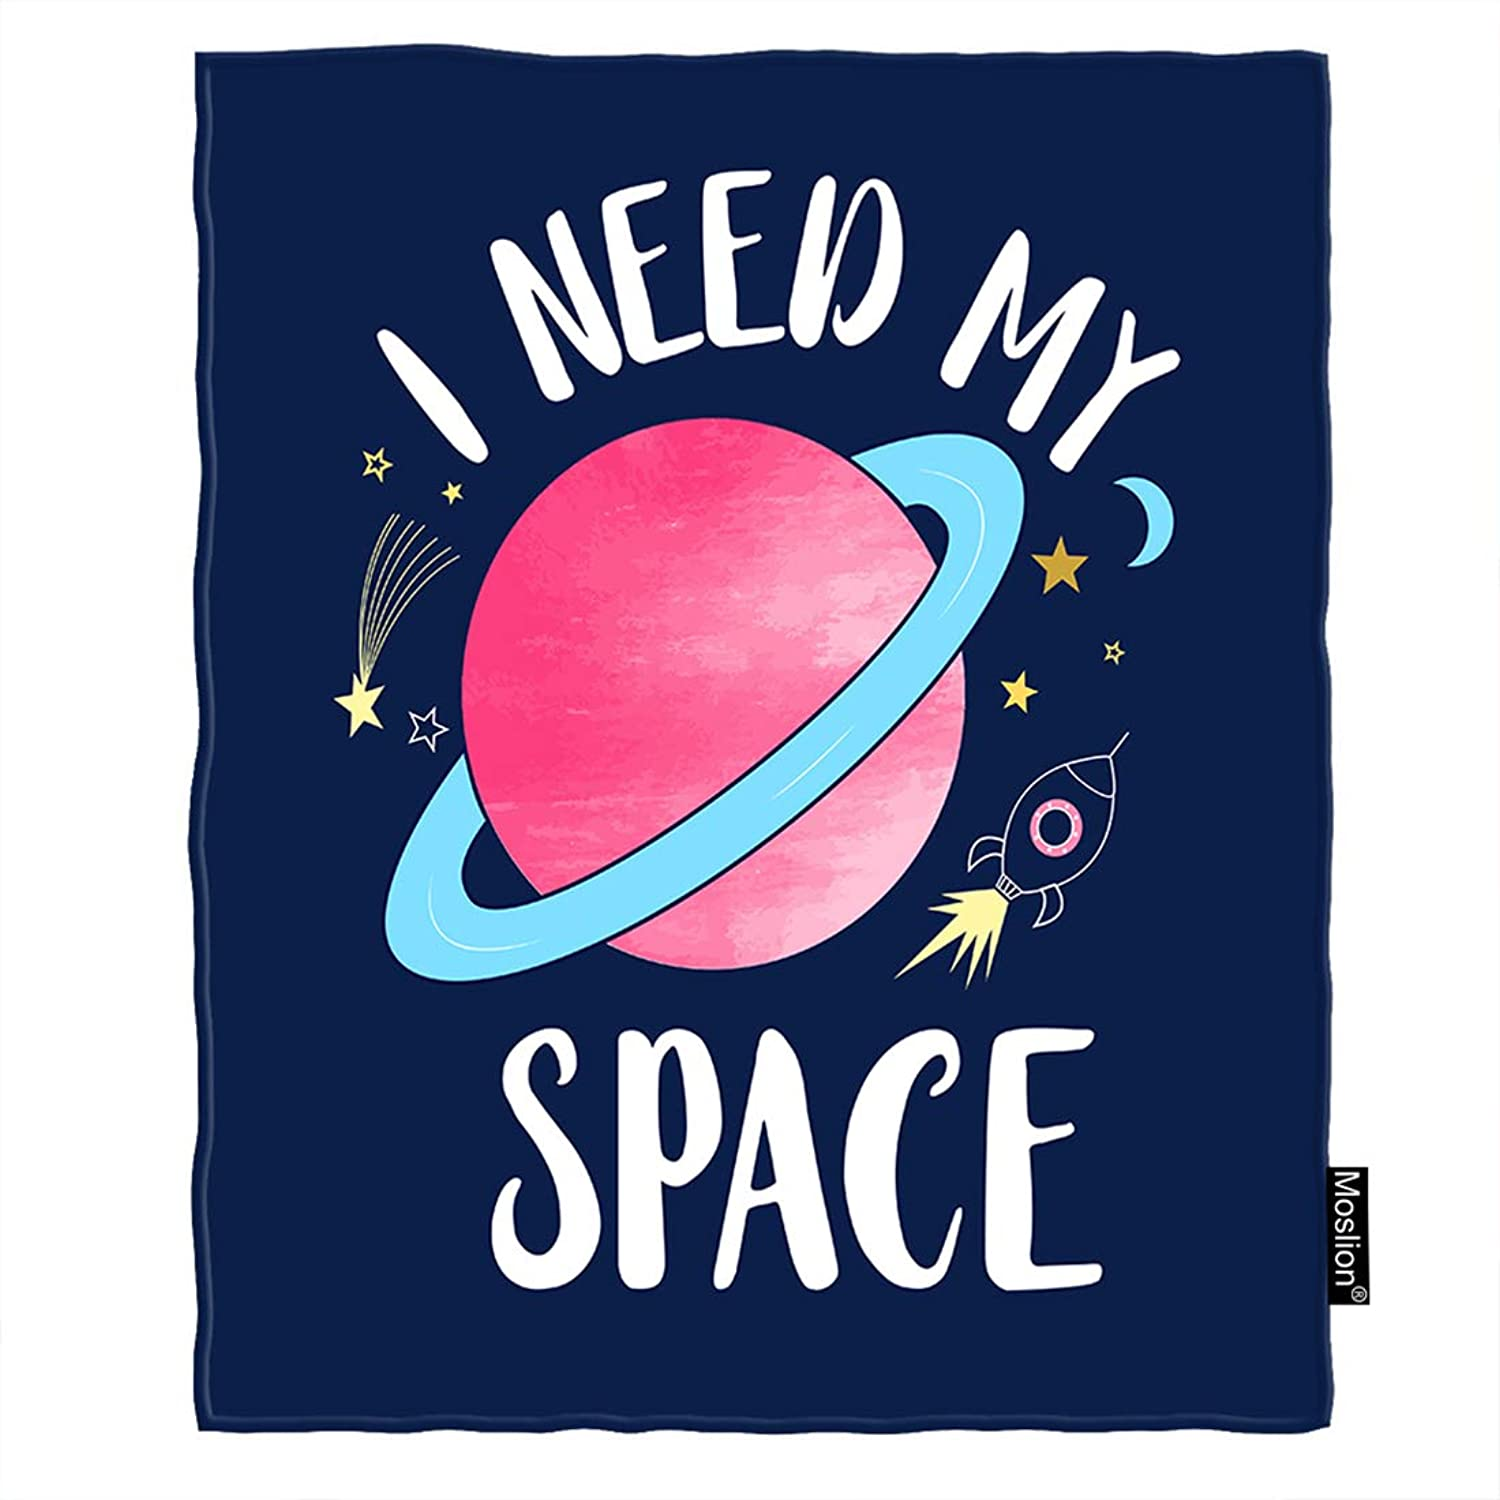 Moslion Planet Blanket Universe Rocket Stars Moon Quote I Need My Space Throw Blanket Flannel Home Decorative Soft Cozy Blankets 60x80 Inch for Adults Kids Sofa Navy bluee Pink